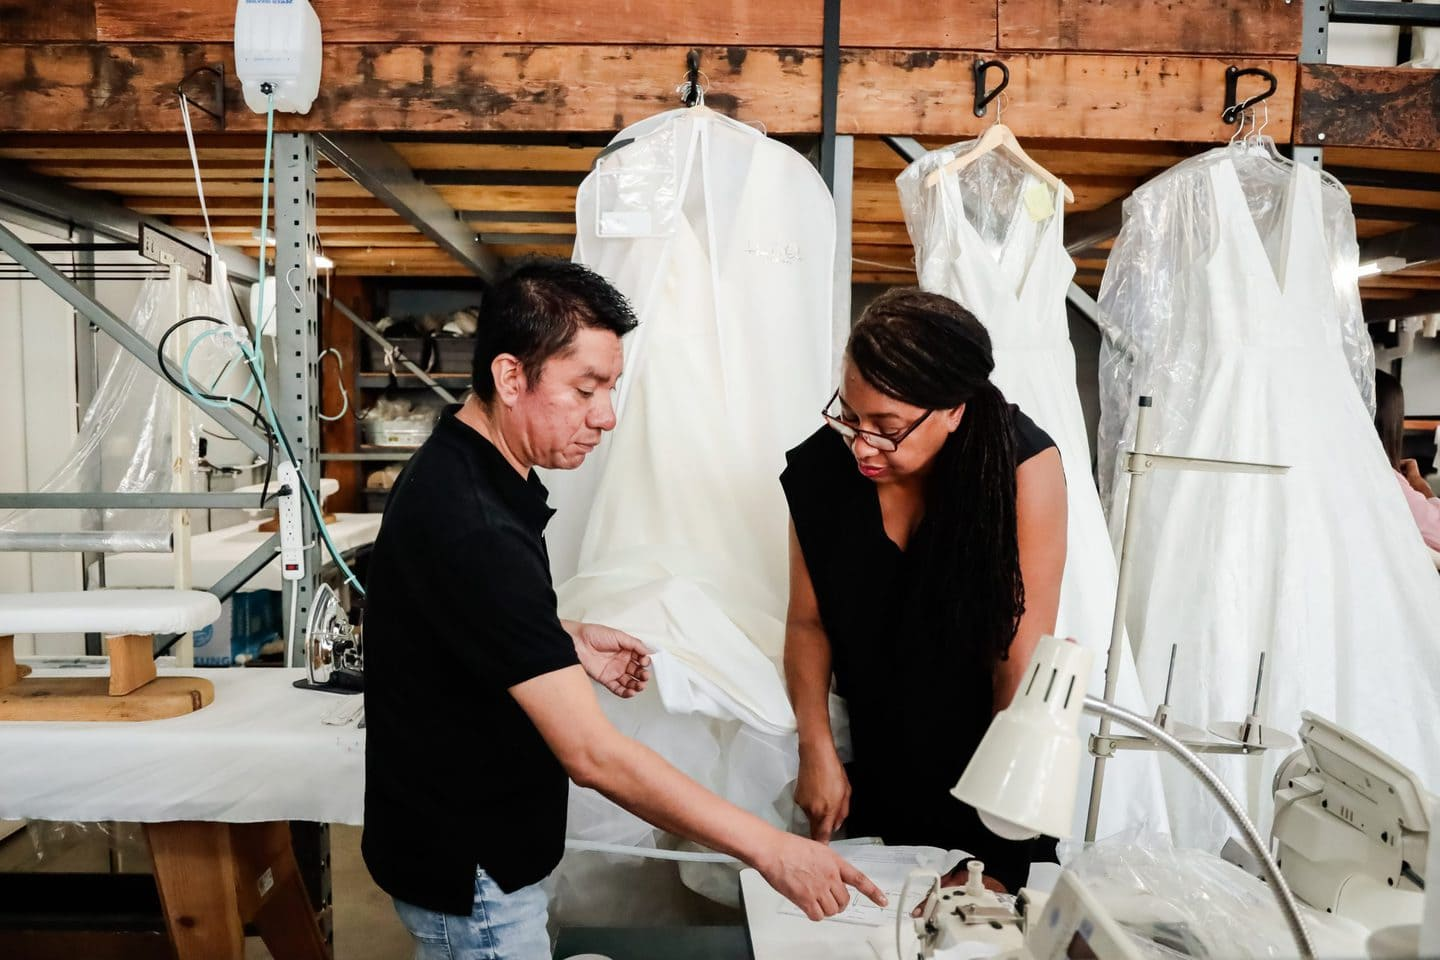 Los Angeles clothing manufacturer showing fashion designer how to start a clothing business in a production studio